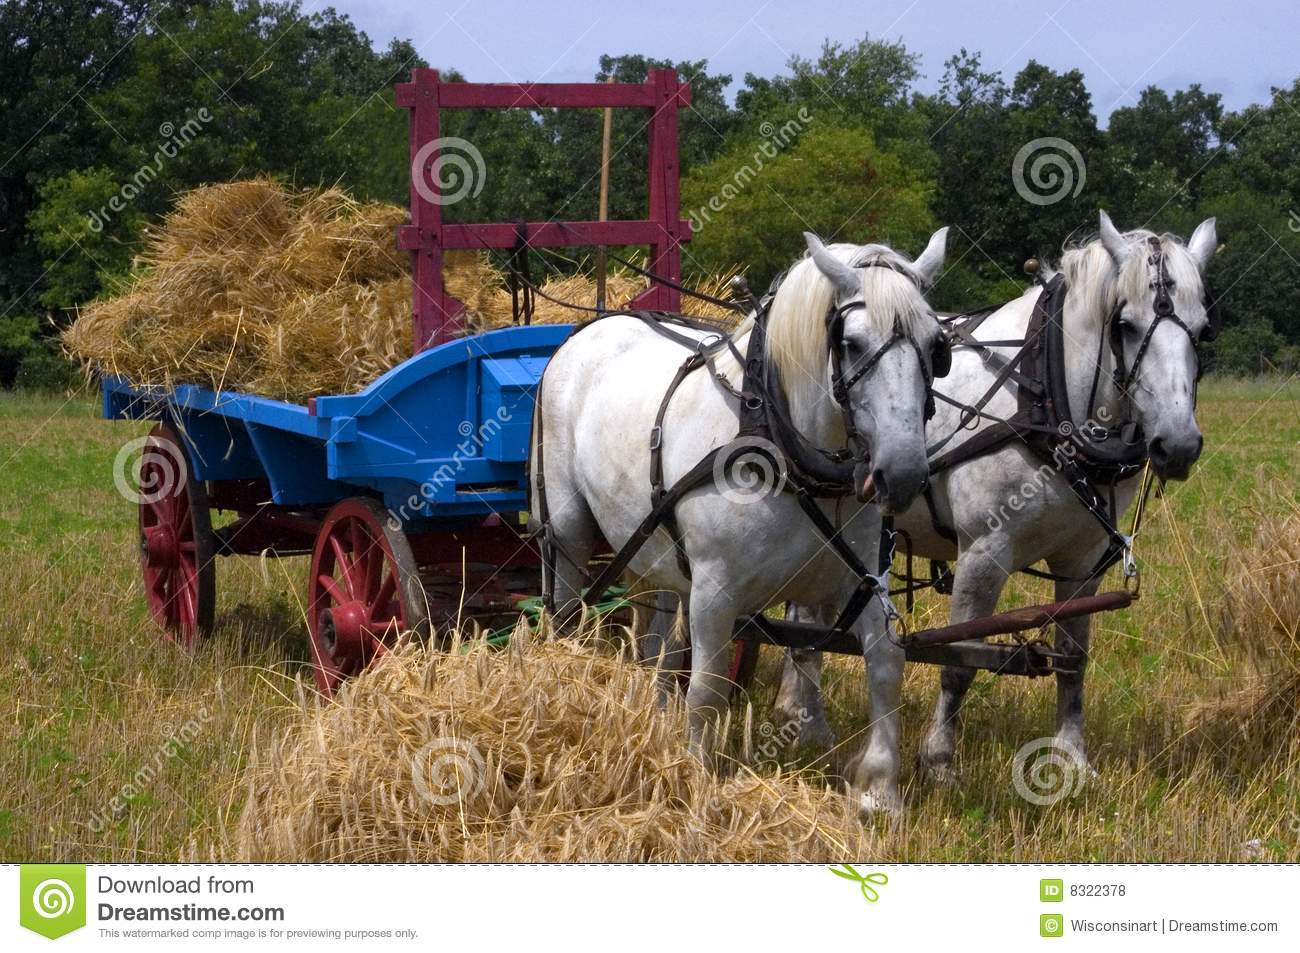 Midwest Living House Plans Team Of Horses Pulling Farm Hay Wagon Royalty Free Stock